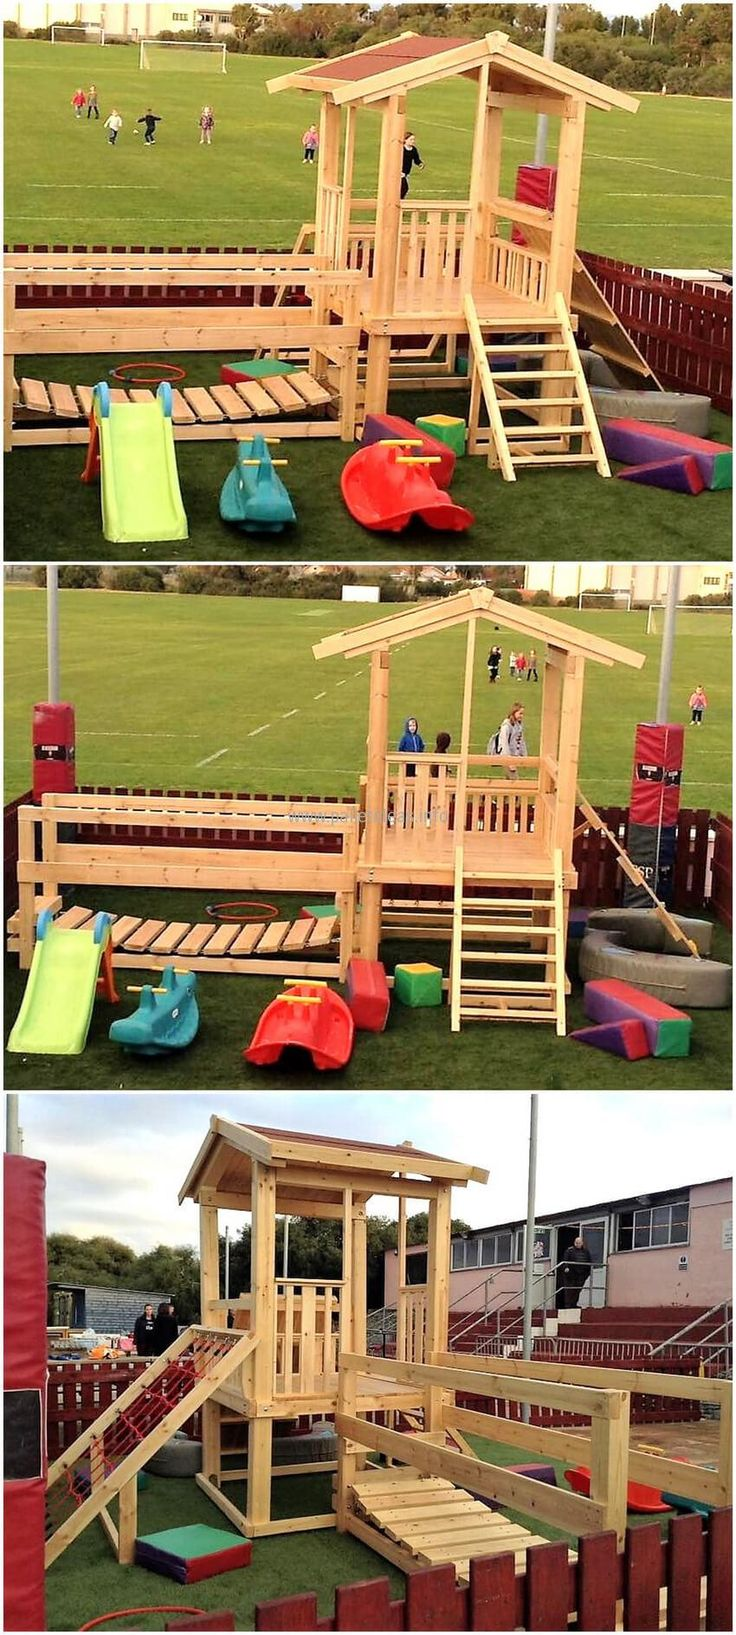 1001 pallets pallet kids playground here is a home made playground - Kids Fun And Play Ideas With Recycled Pallets